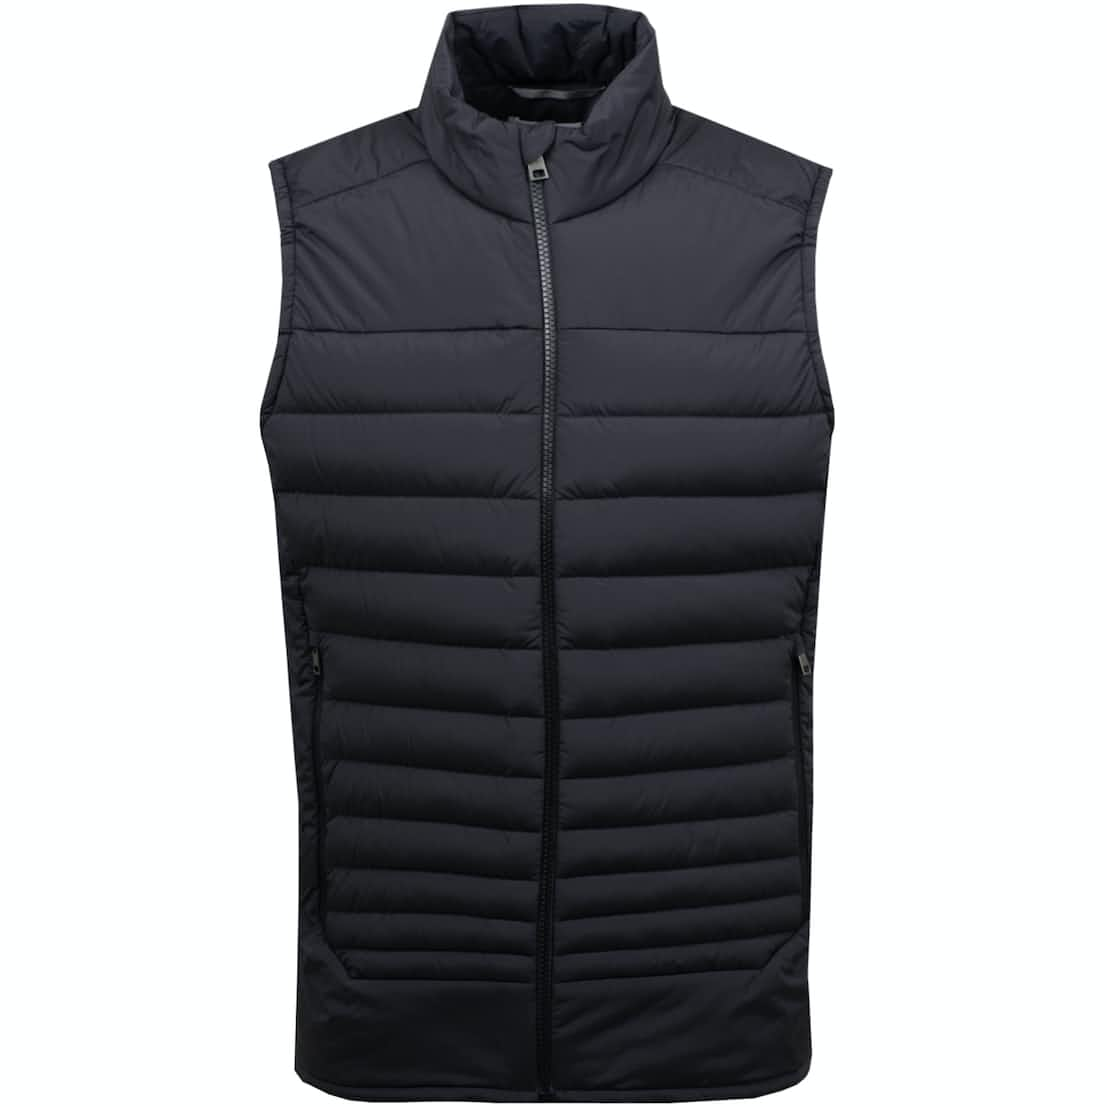 Blackcomb Stretch Vest Black - 2019